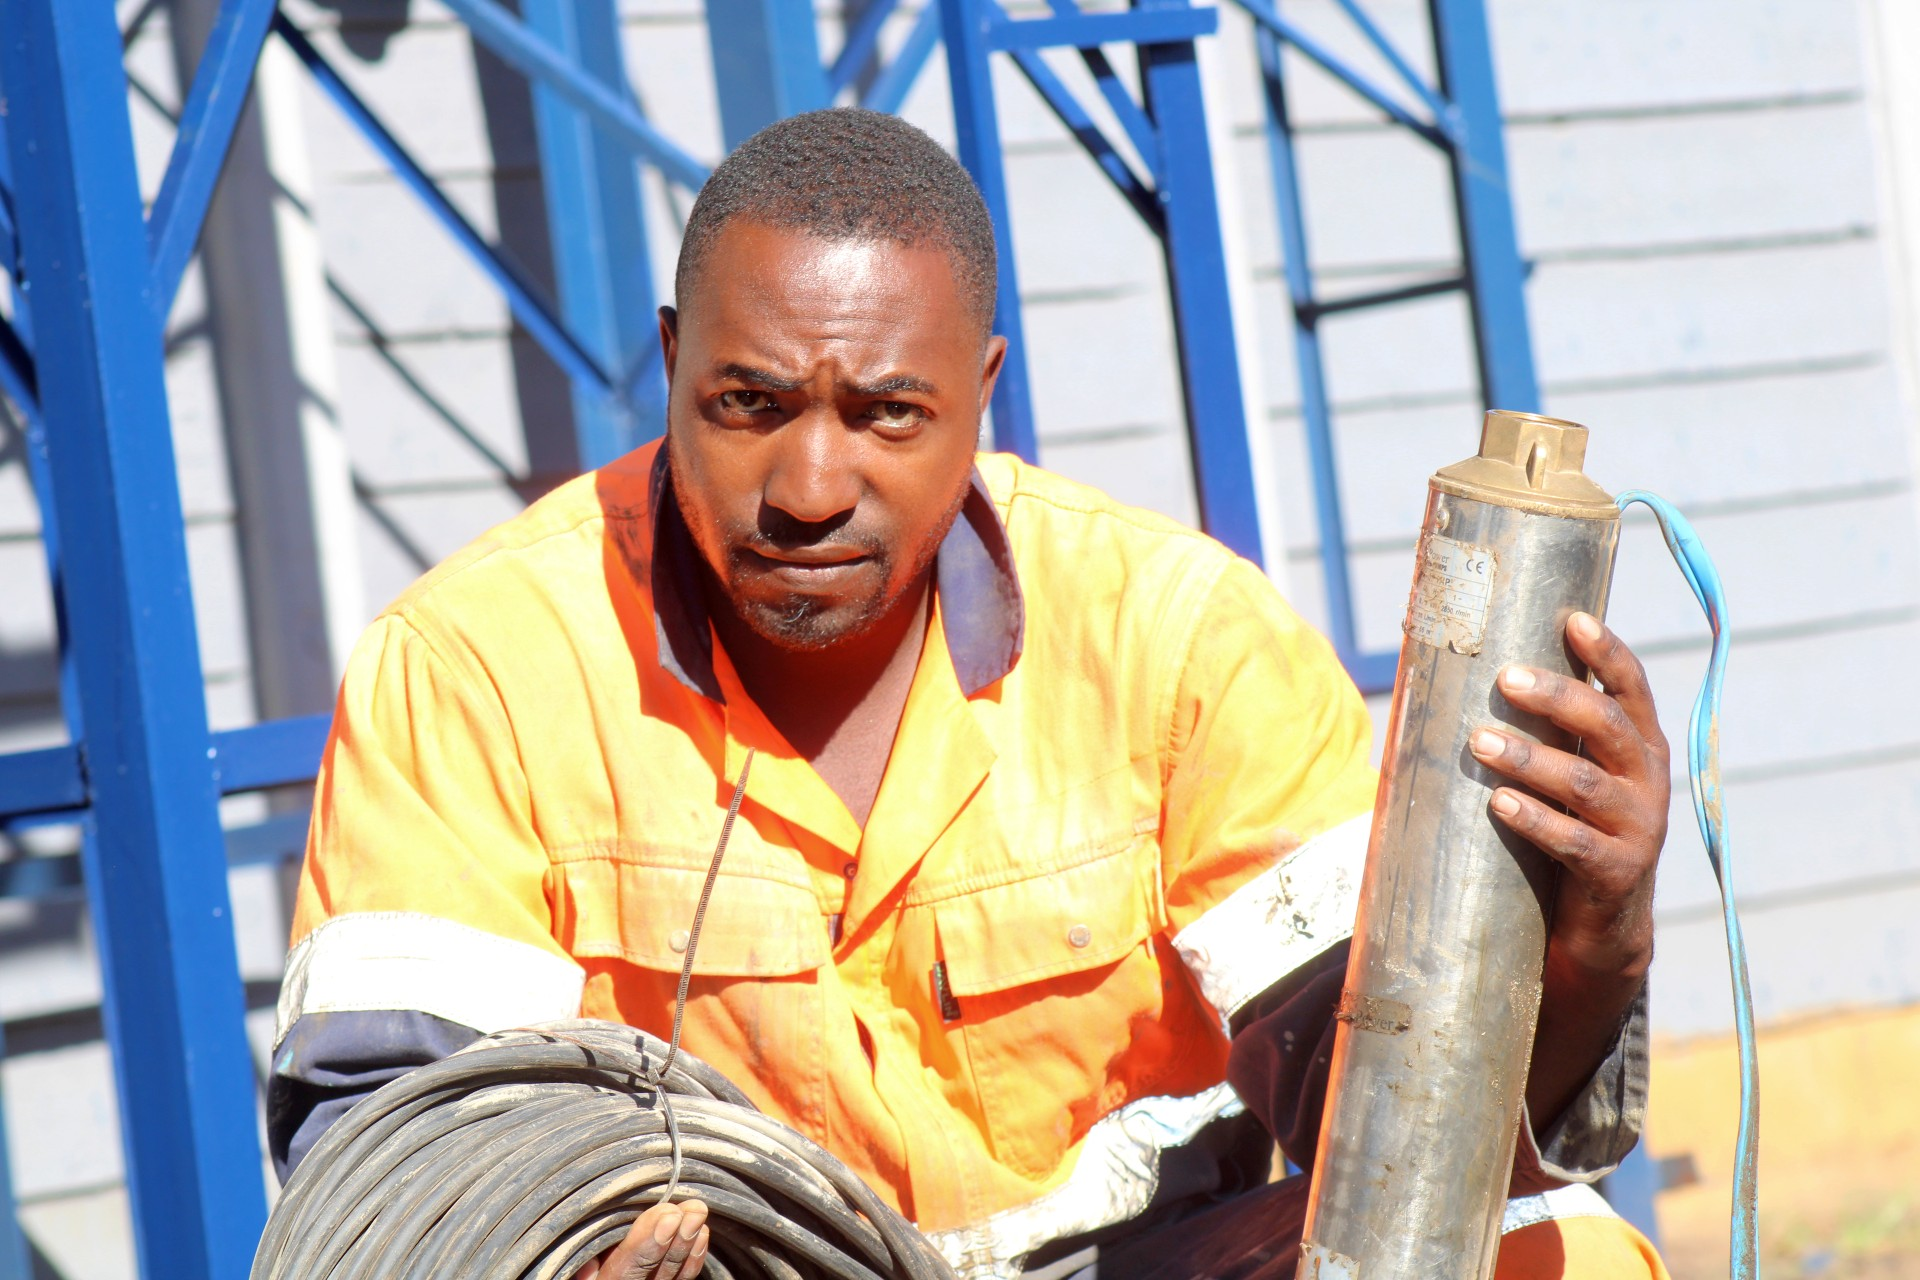 Borehole Drilling and Construction with Nakiso Borehole Drilling In Zimbabwe - Get A Quote Today!